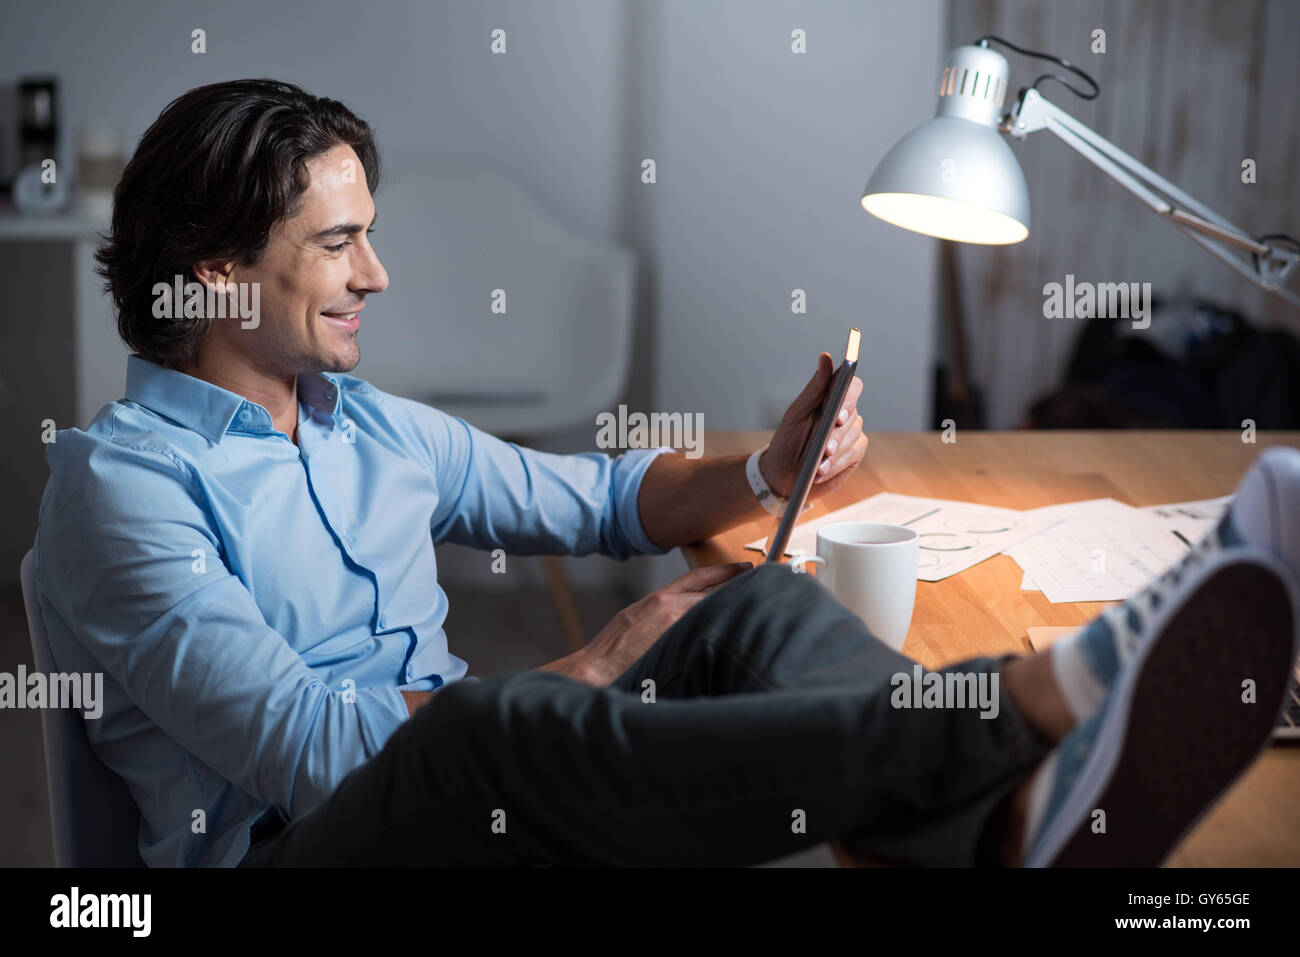 Handsome cheerful yang man using tablet. - Stock Image